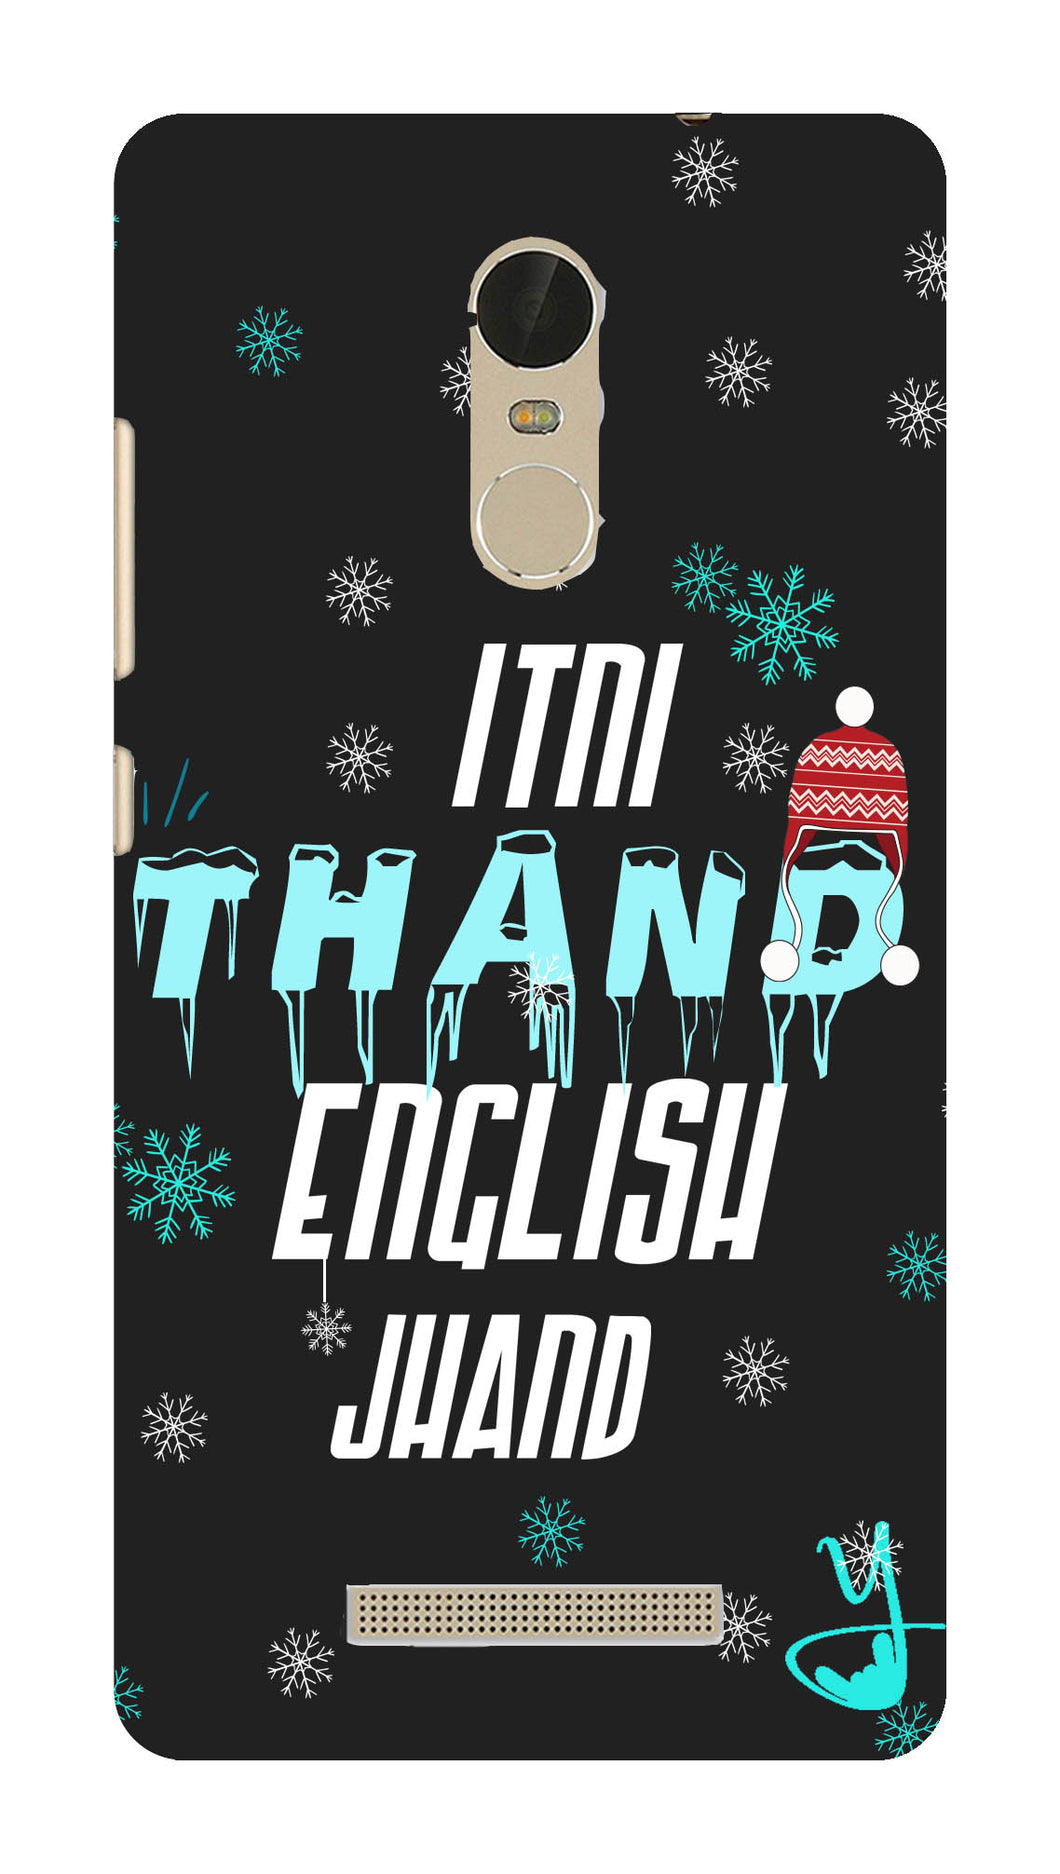 Itni Thand edition for Xiaomi redmi note 3